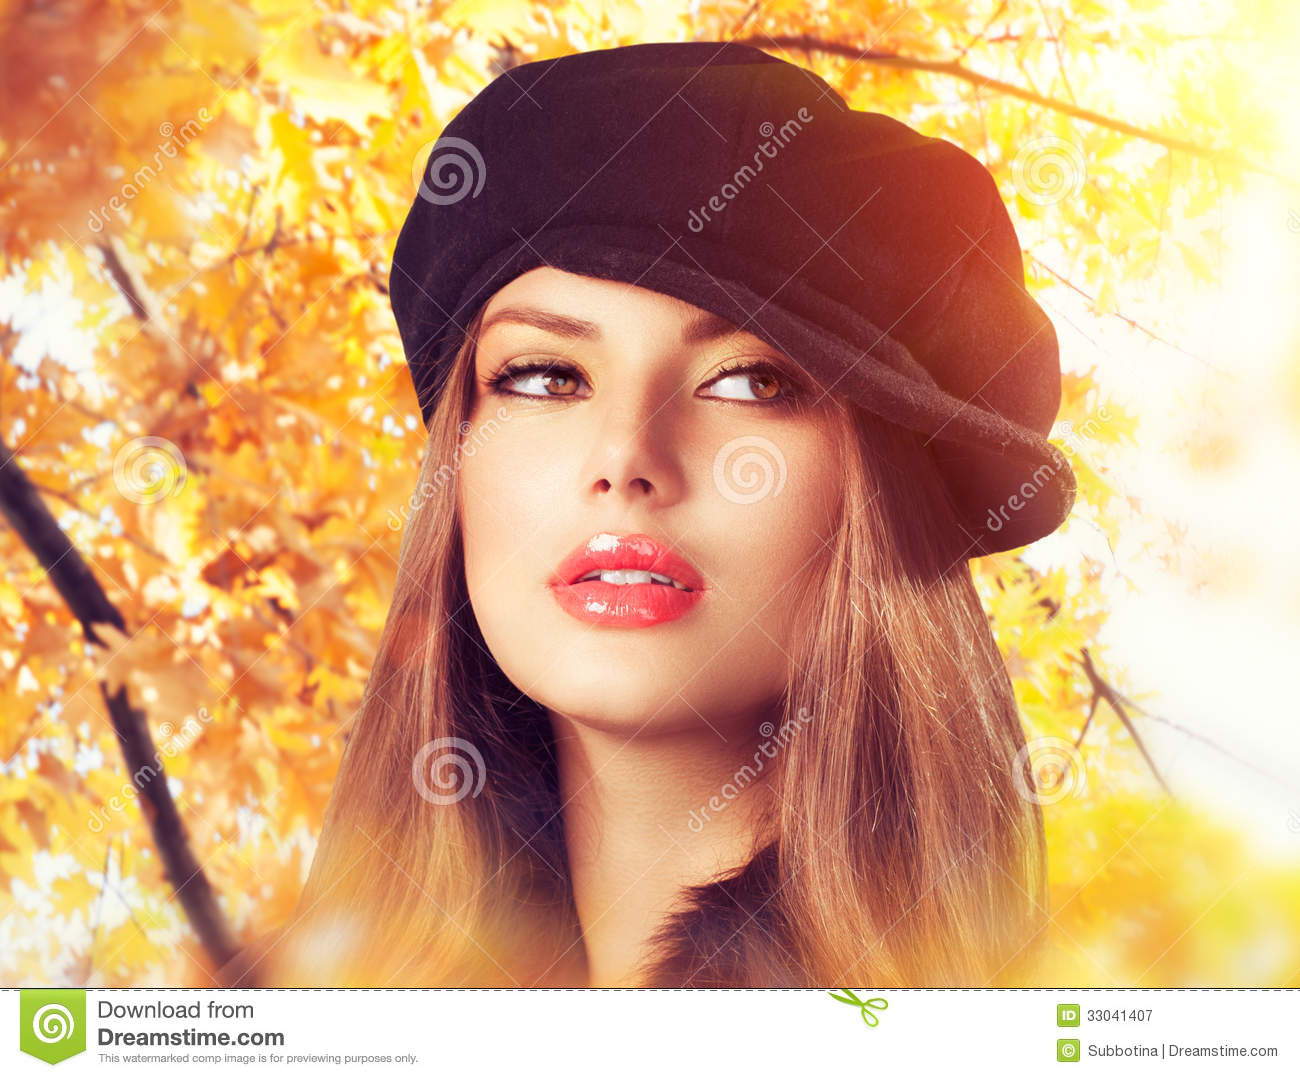 Autumn Woman in a Beret